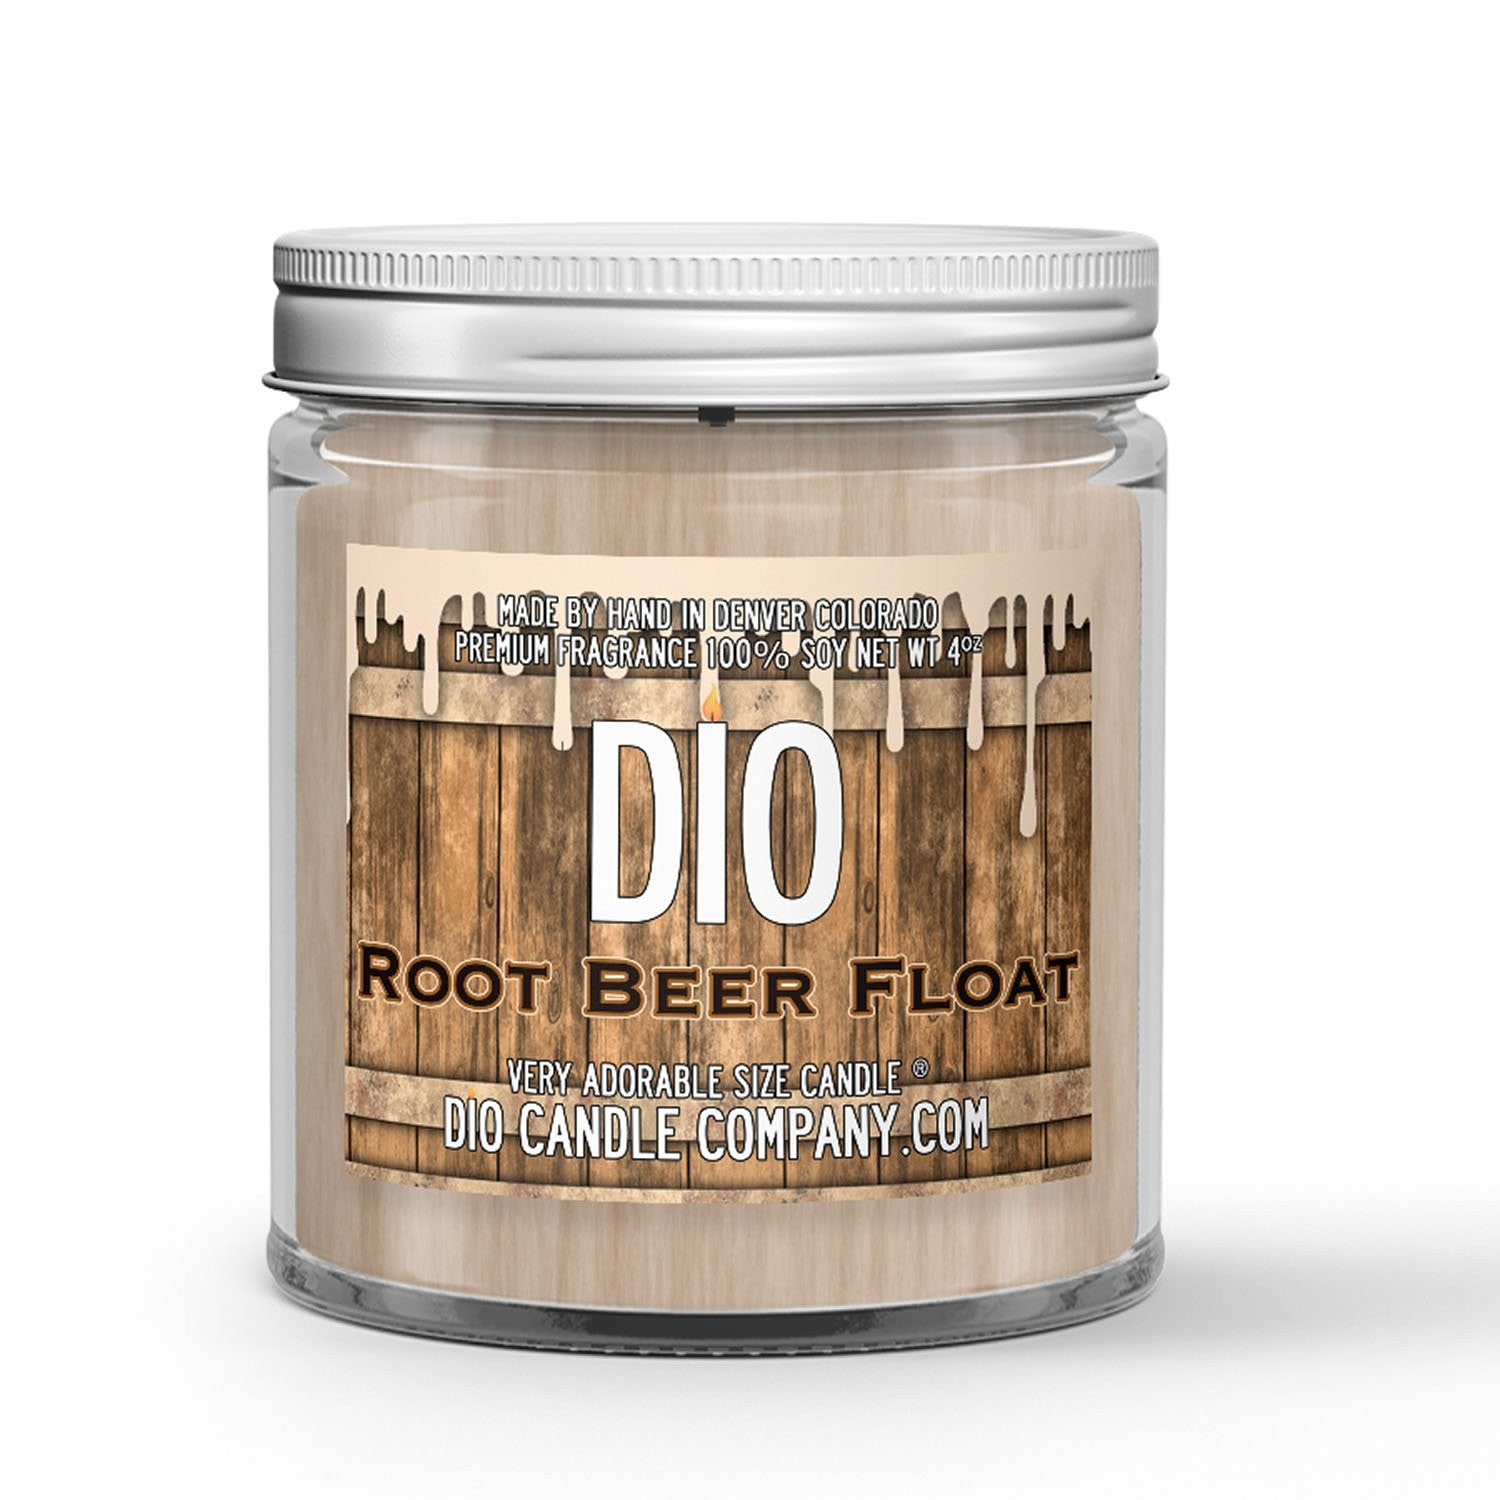 Root Beer Float Candles and Wax Melts